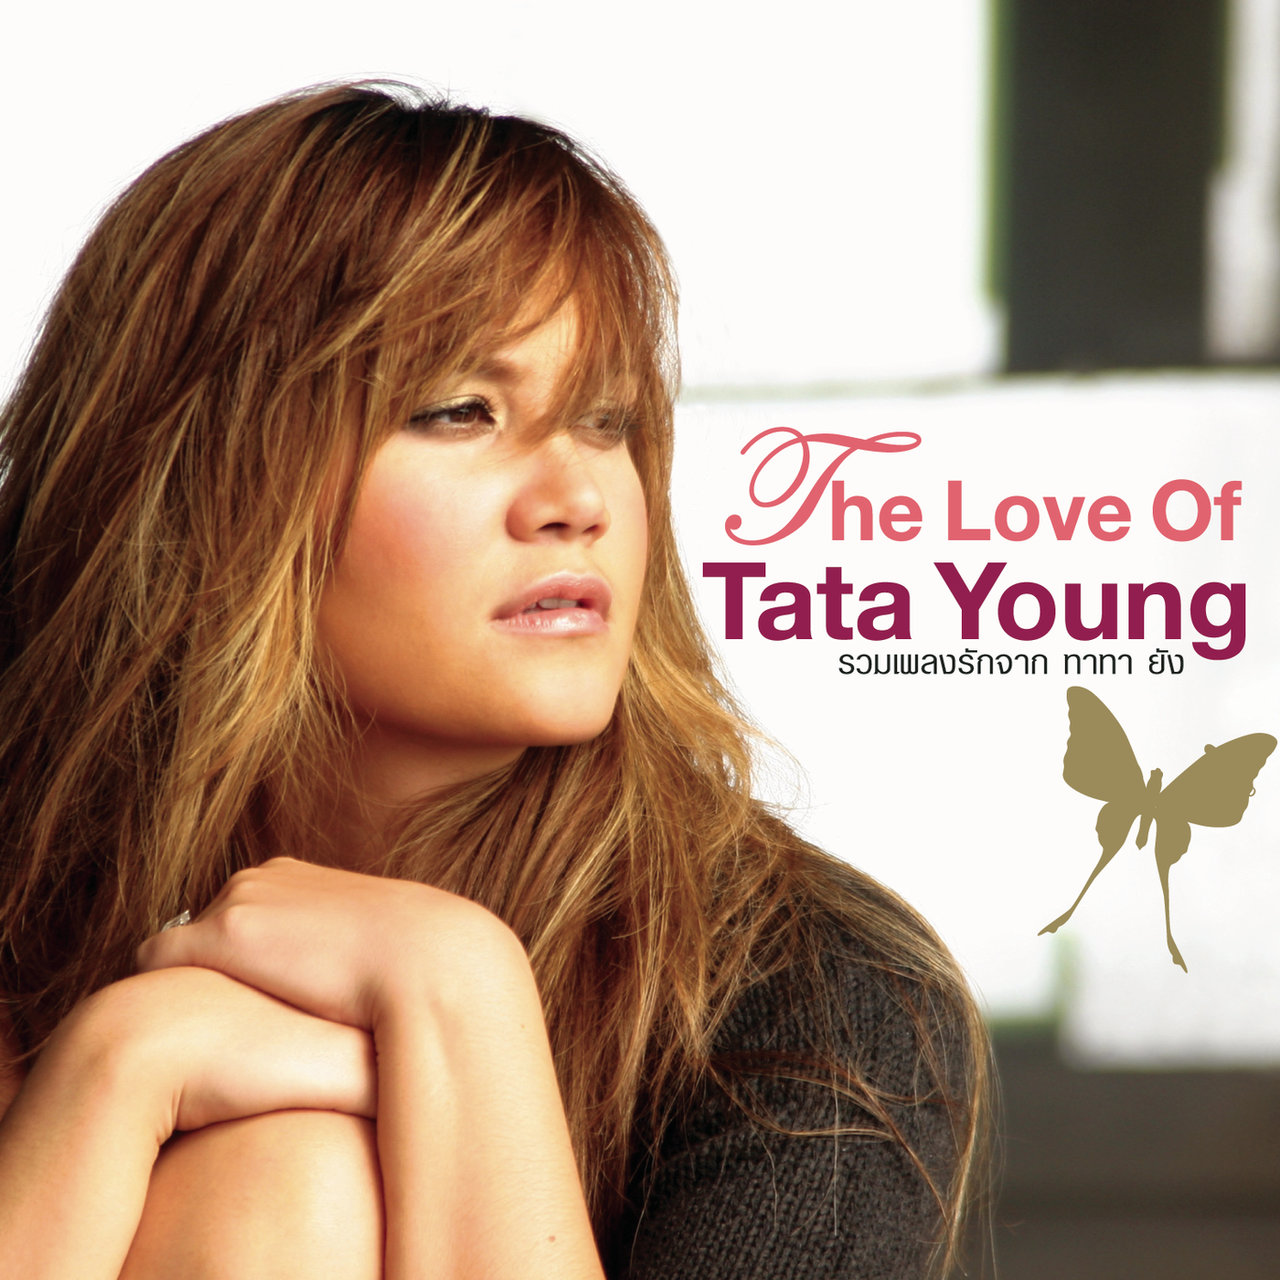 Watch Tata Young video